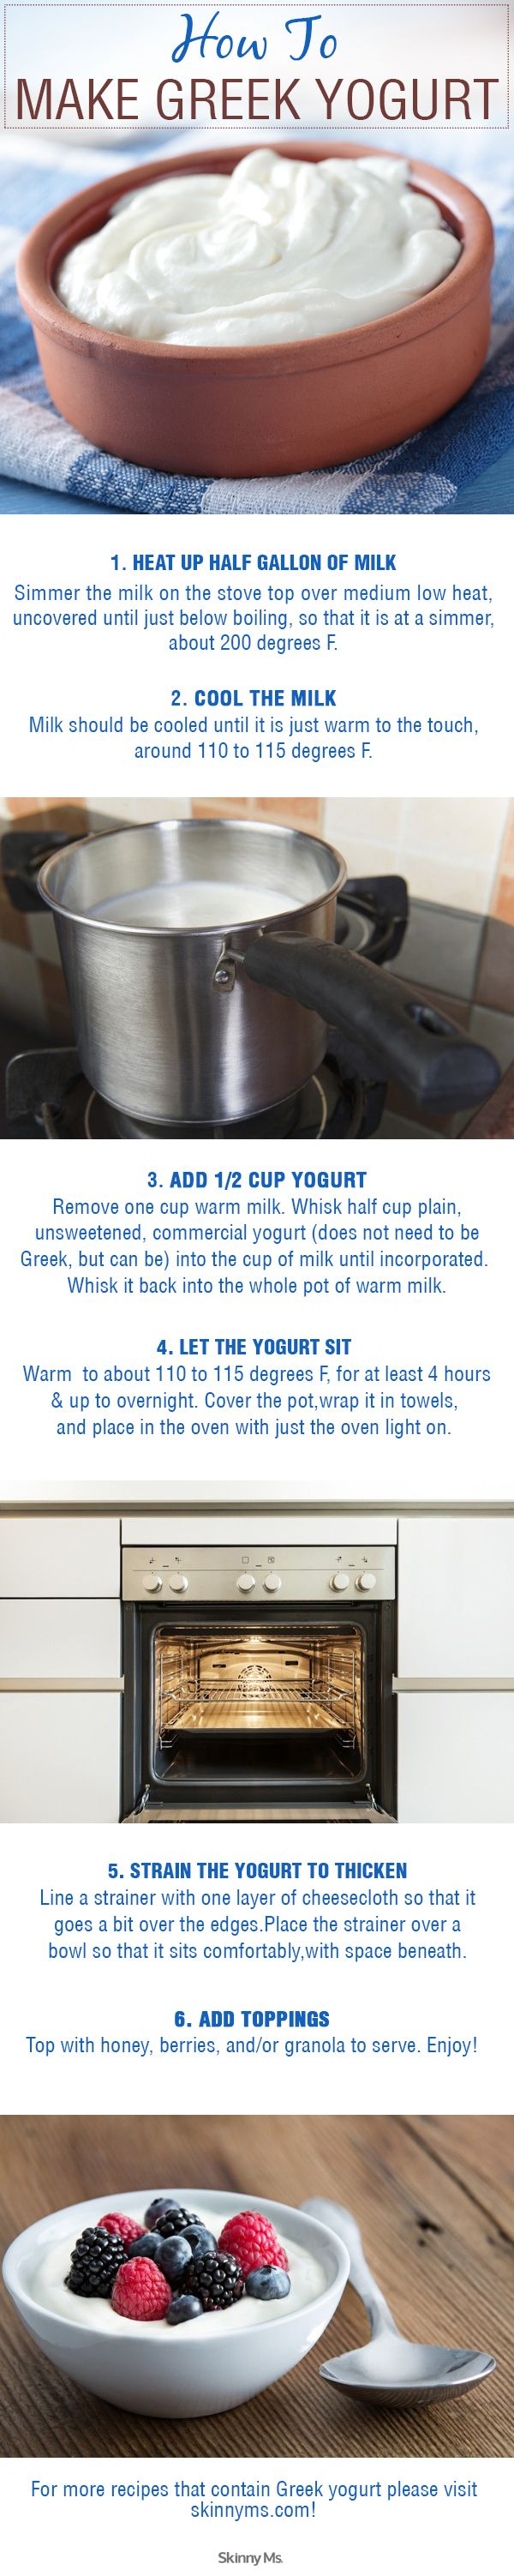 Make your own homemade Greek yogurt with our simple tips. #Greekyogurt #DIY #HowTo